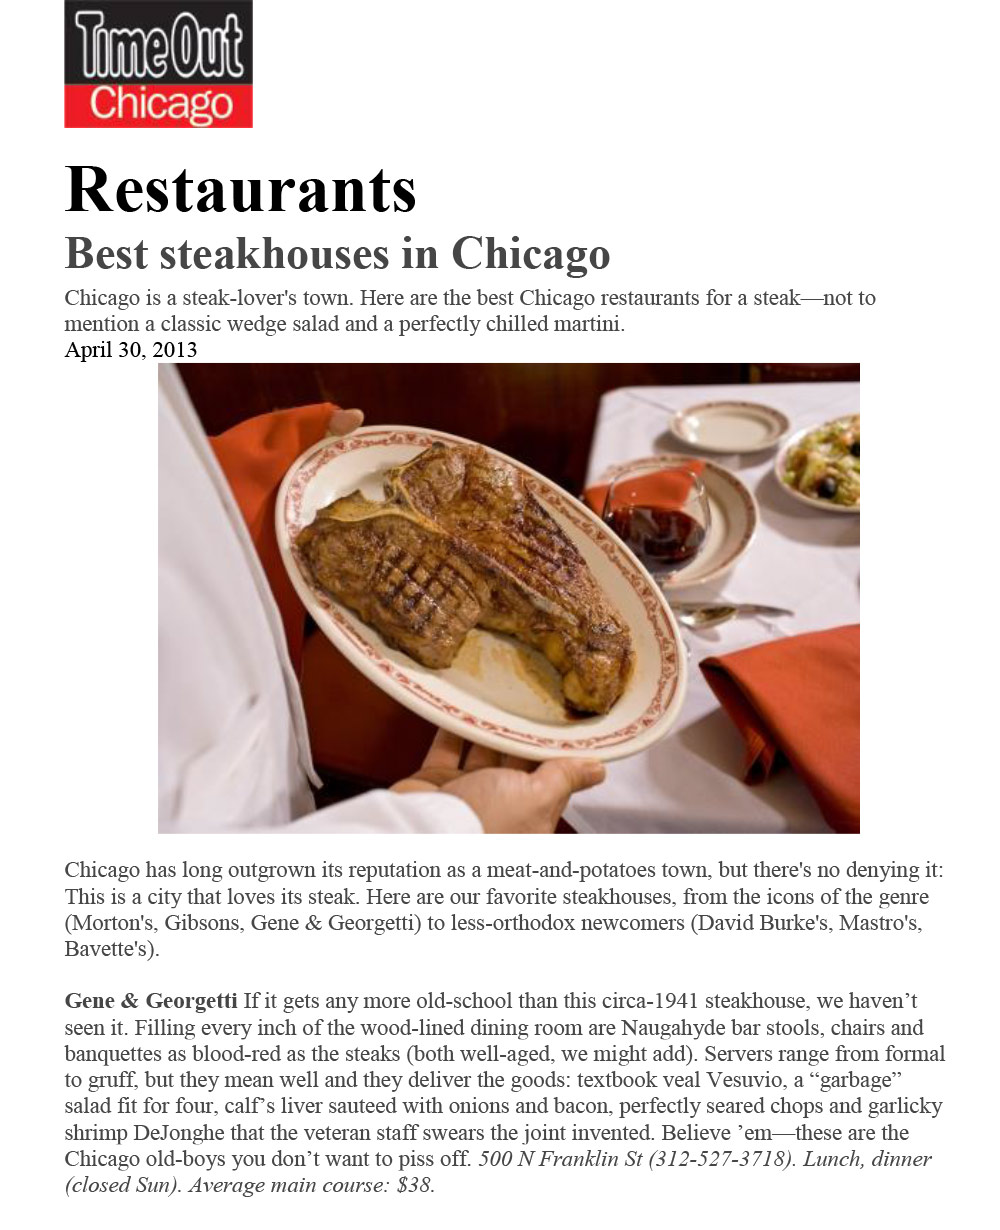 TimeoutChicago_BestSteakhouses